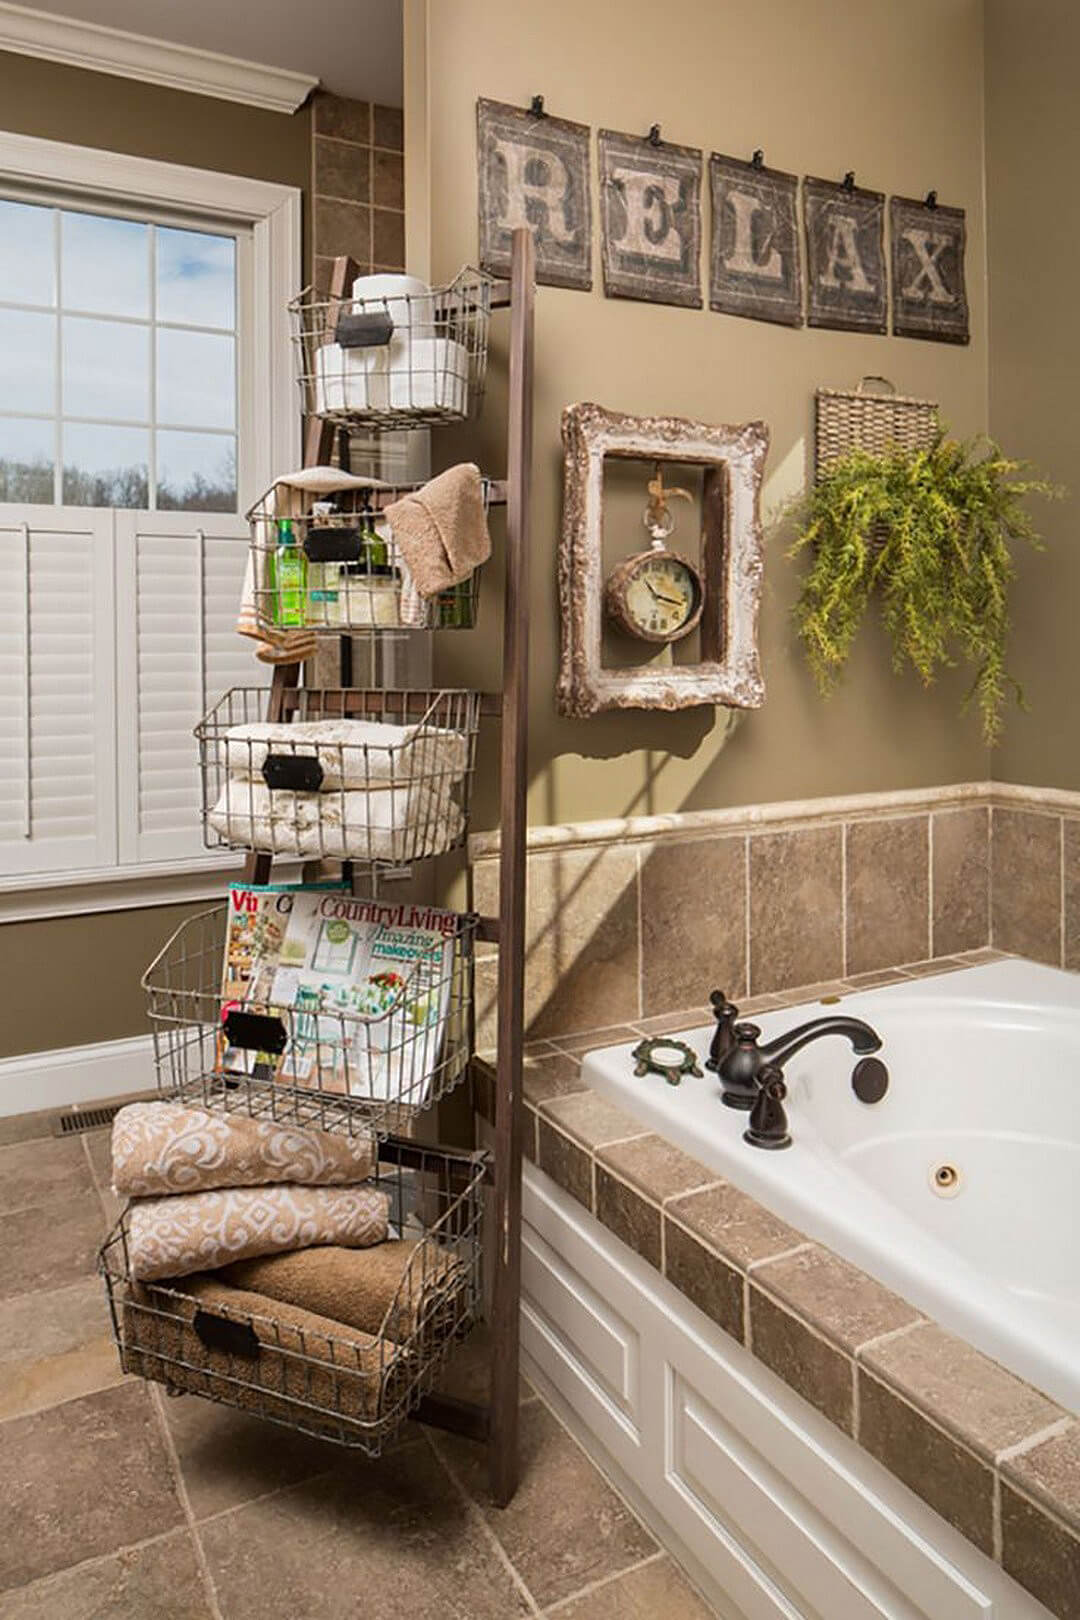 Newsstand Style Towel & Toiletries Rack